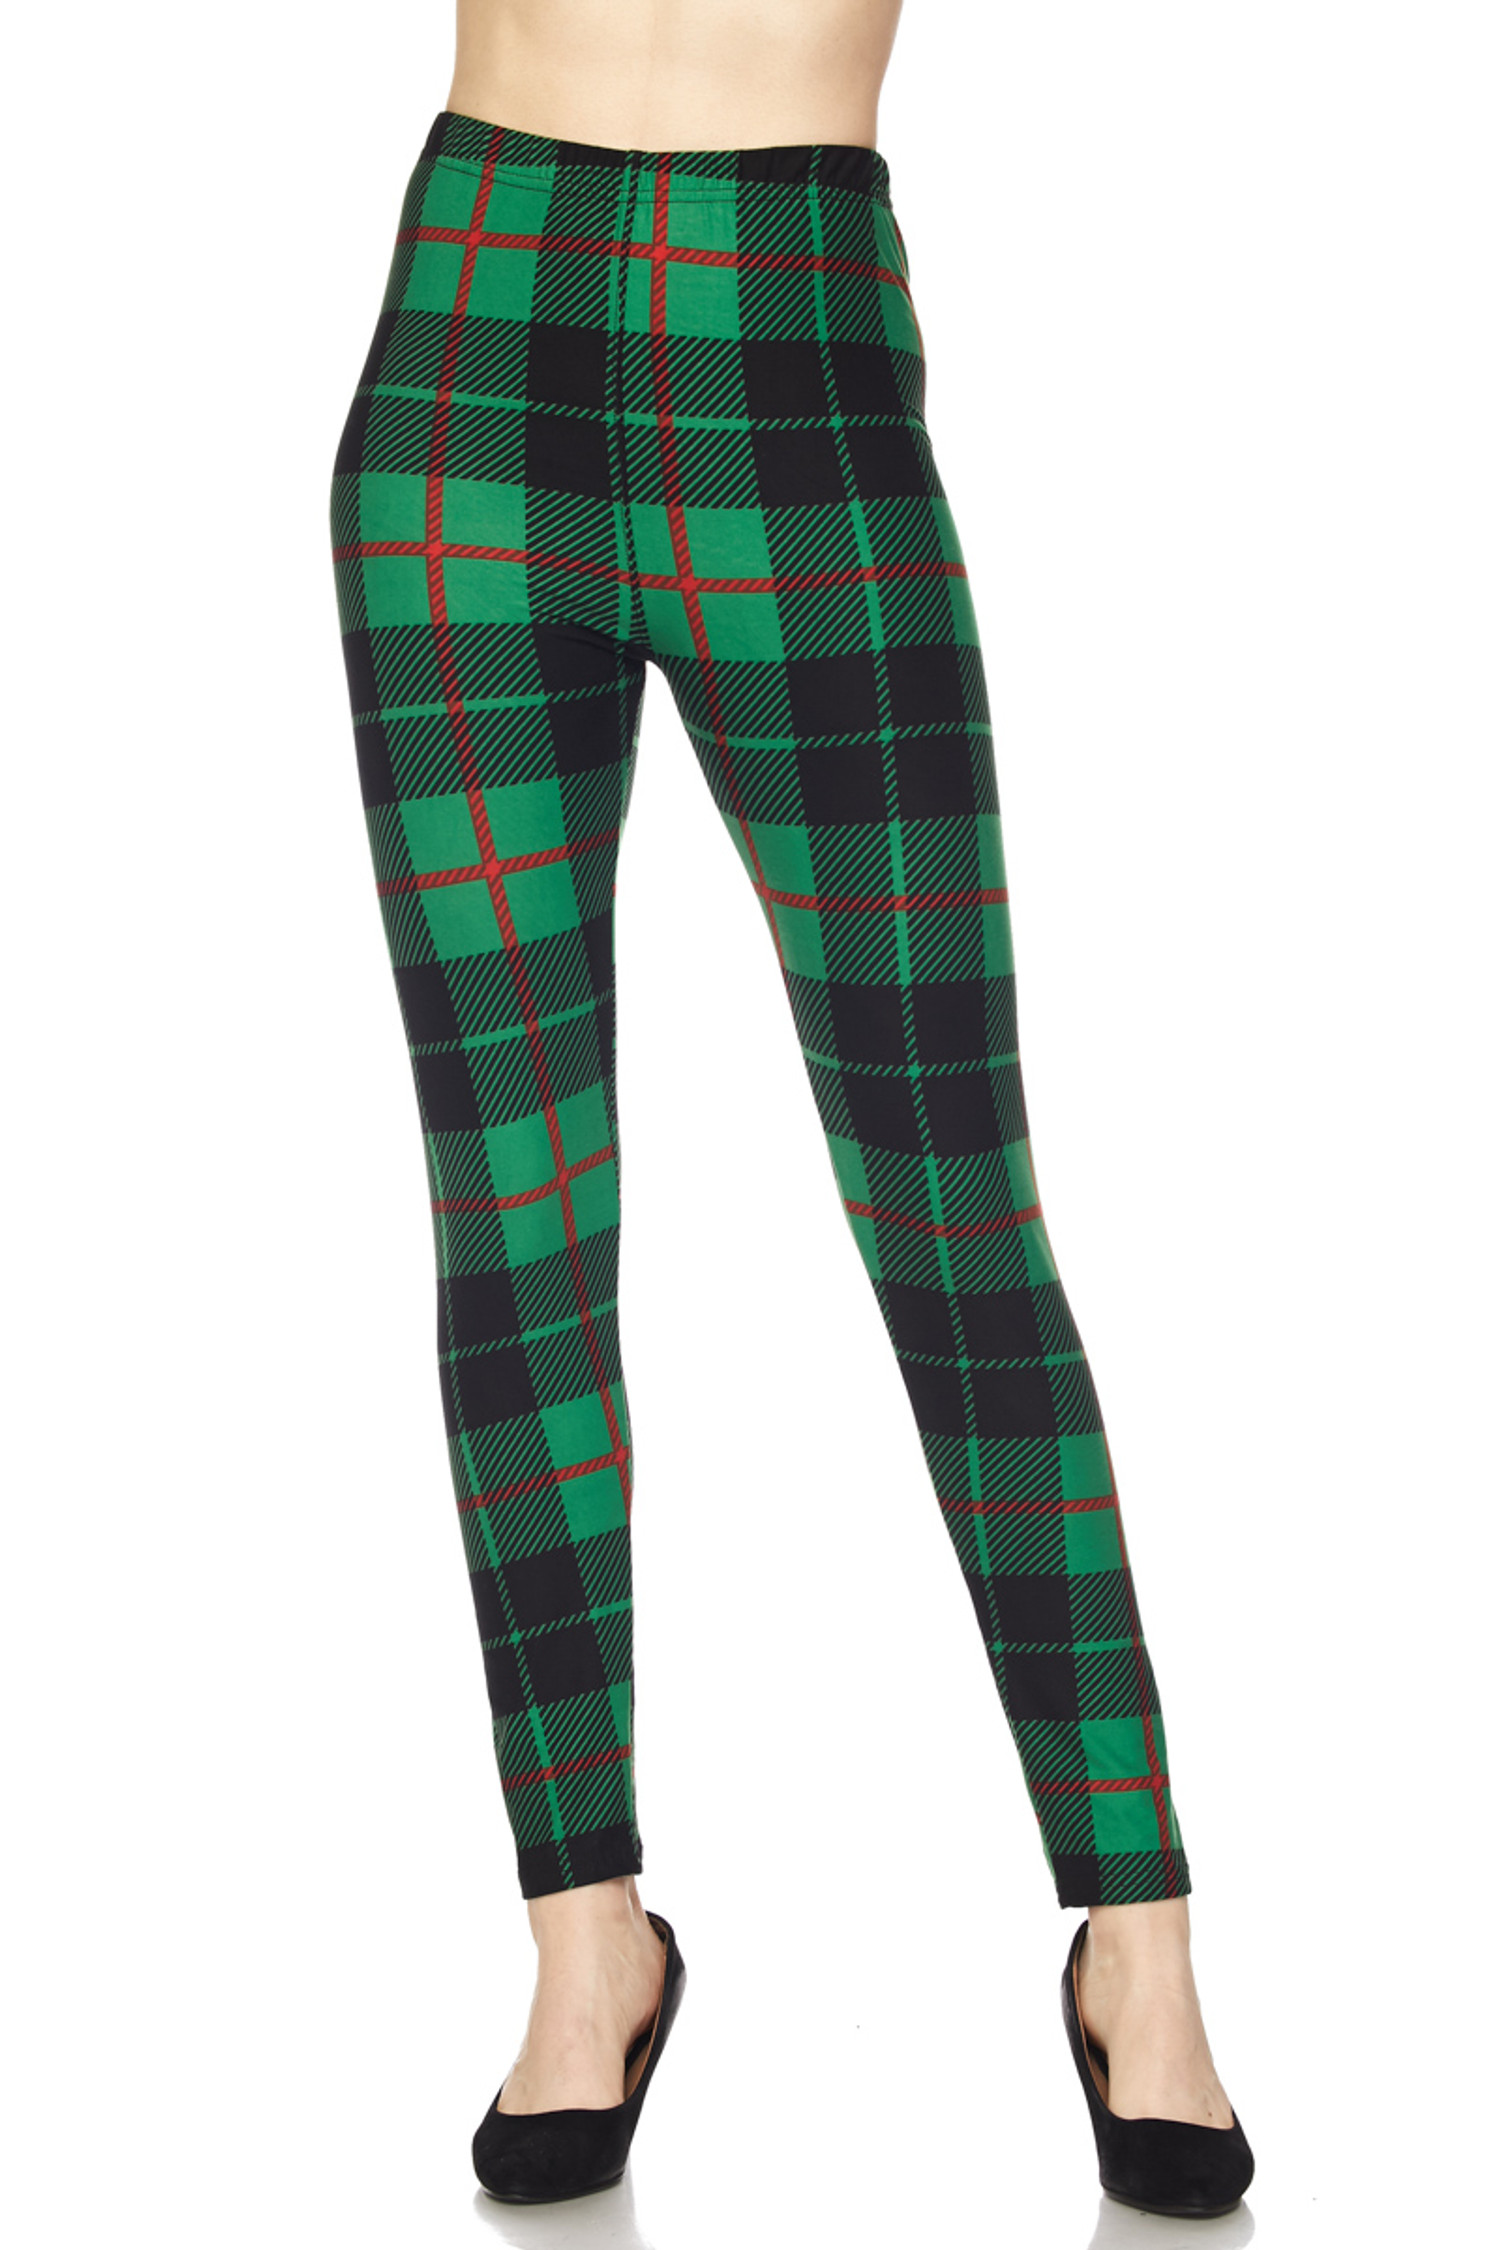 Brushed Green Holiday Plaid Extra Plus Size Leggings - 3X-5X